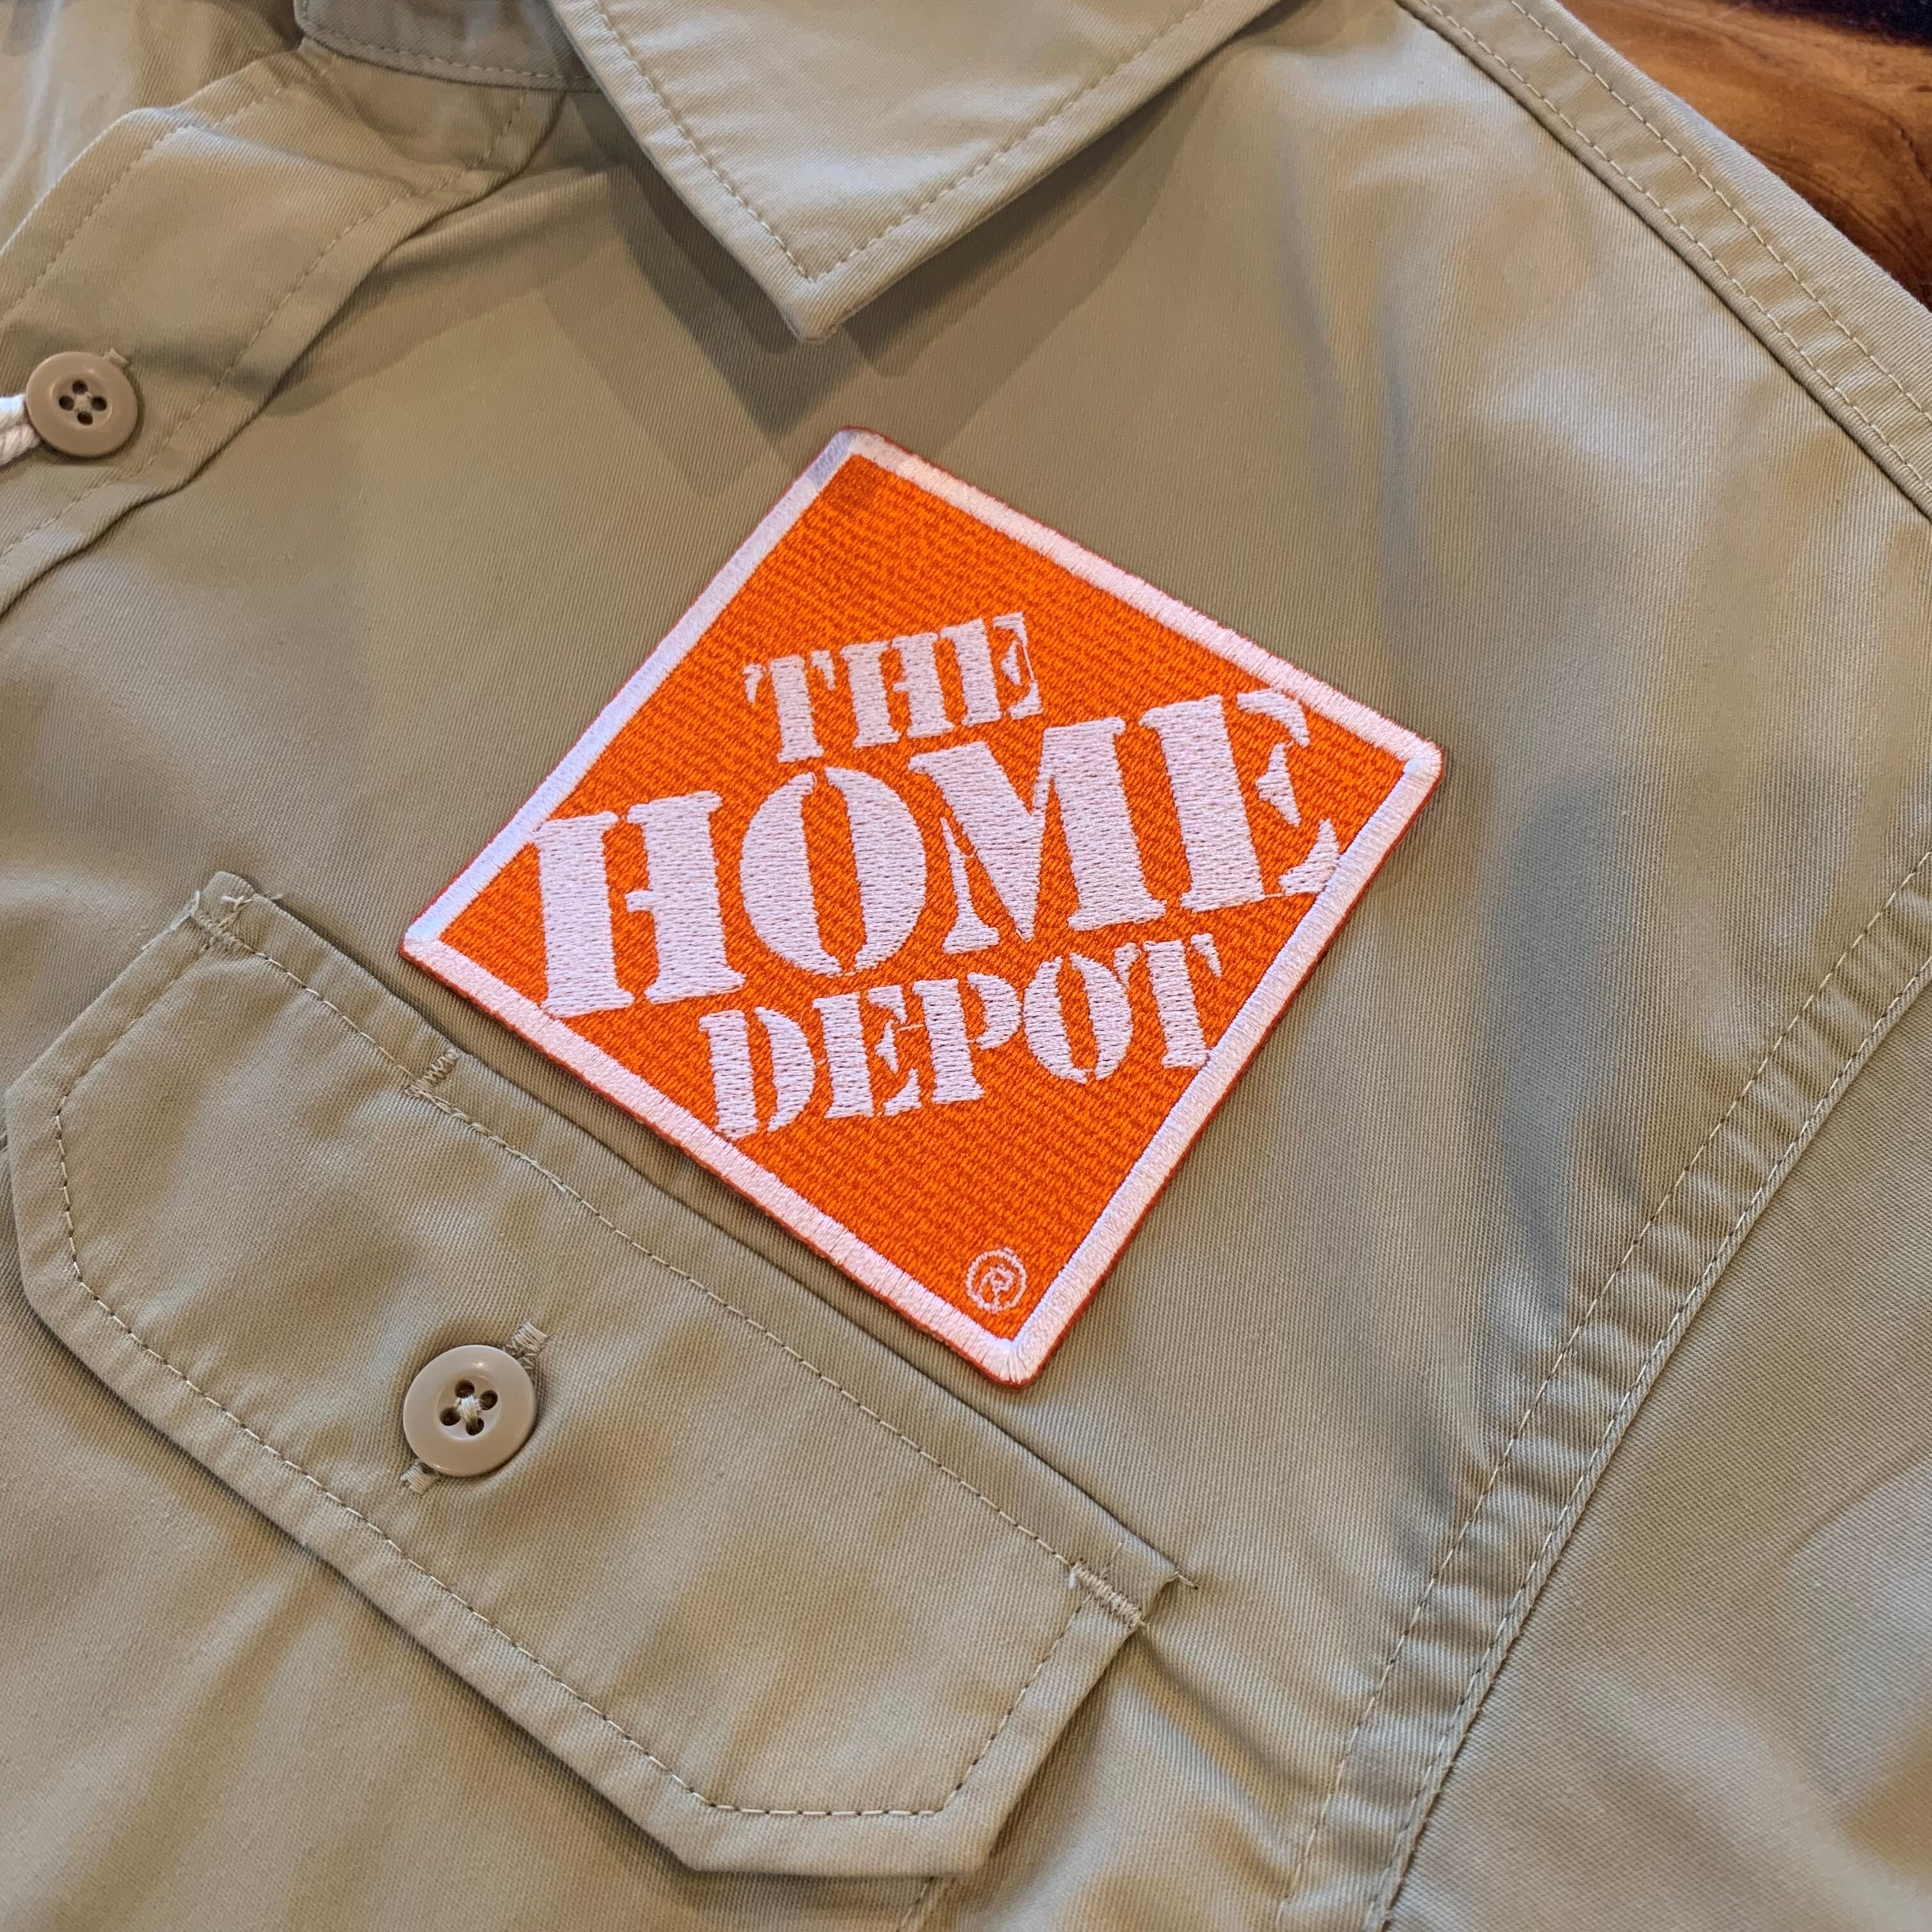 PATCHIES【ワッペン】 THE HOME DEPOT ホームデポ ワークシャツ